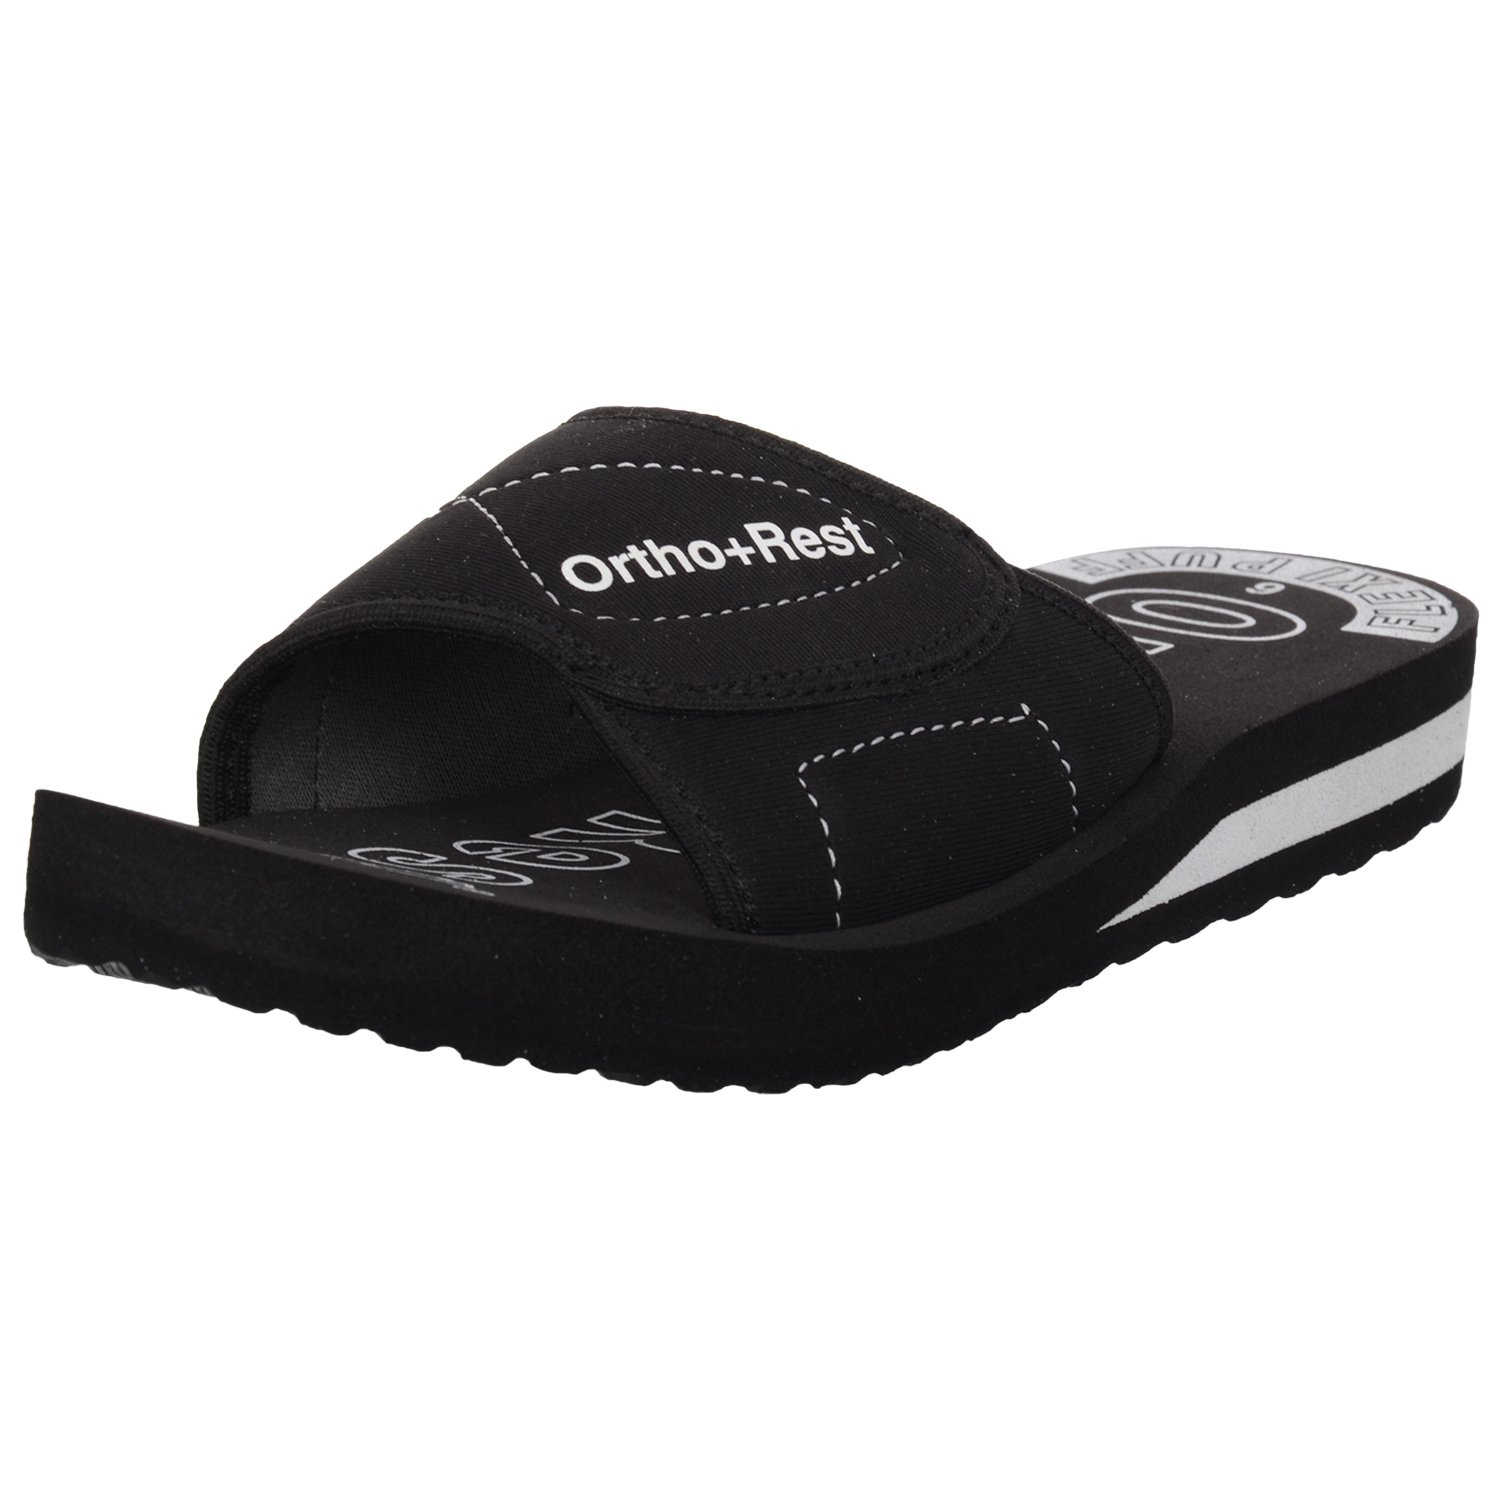 ortho rest slippers near me